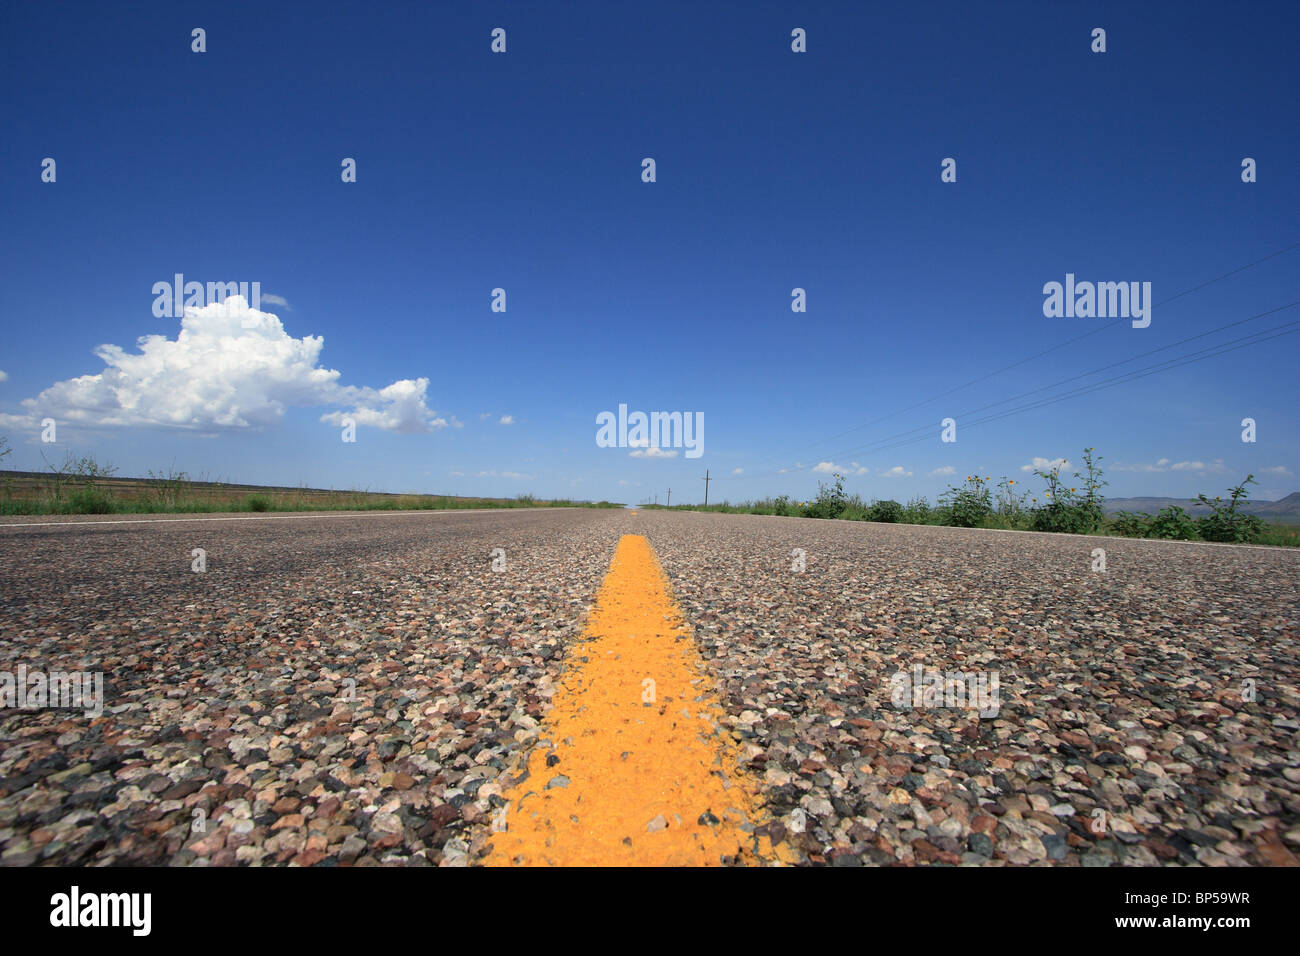 Road marking on a straight highway, Groom, USA - Stock Image